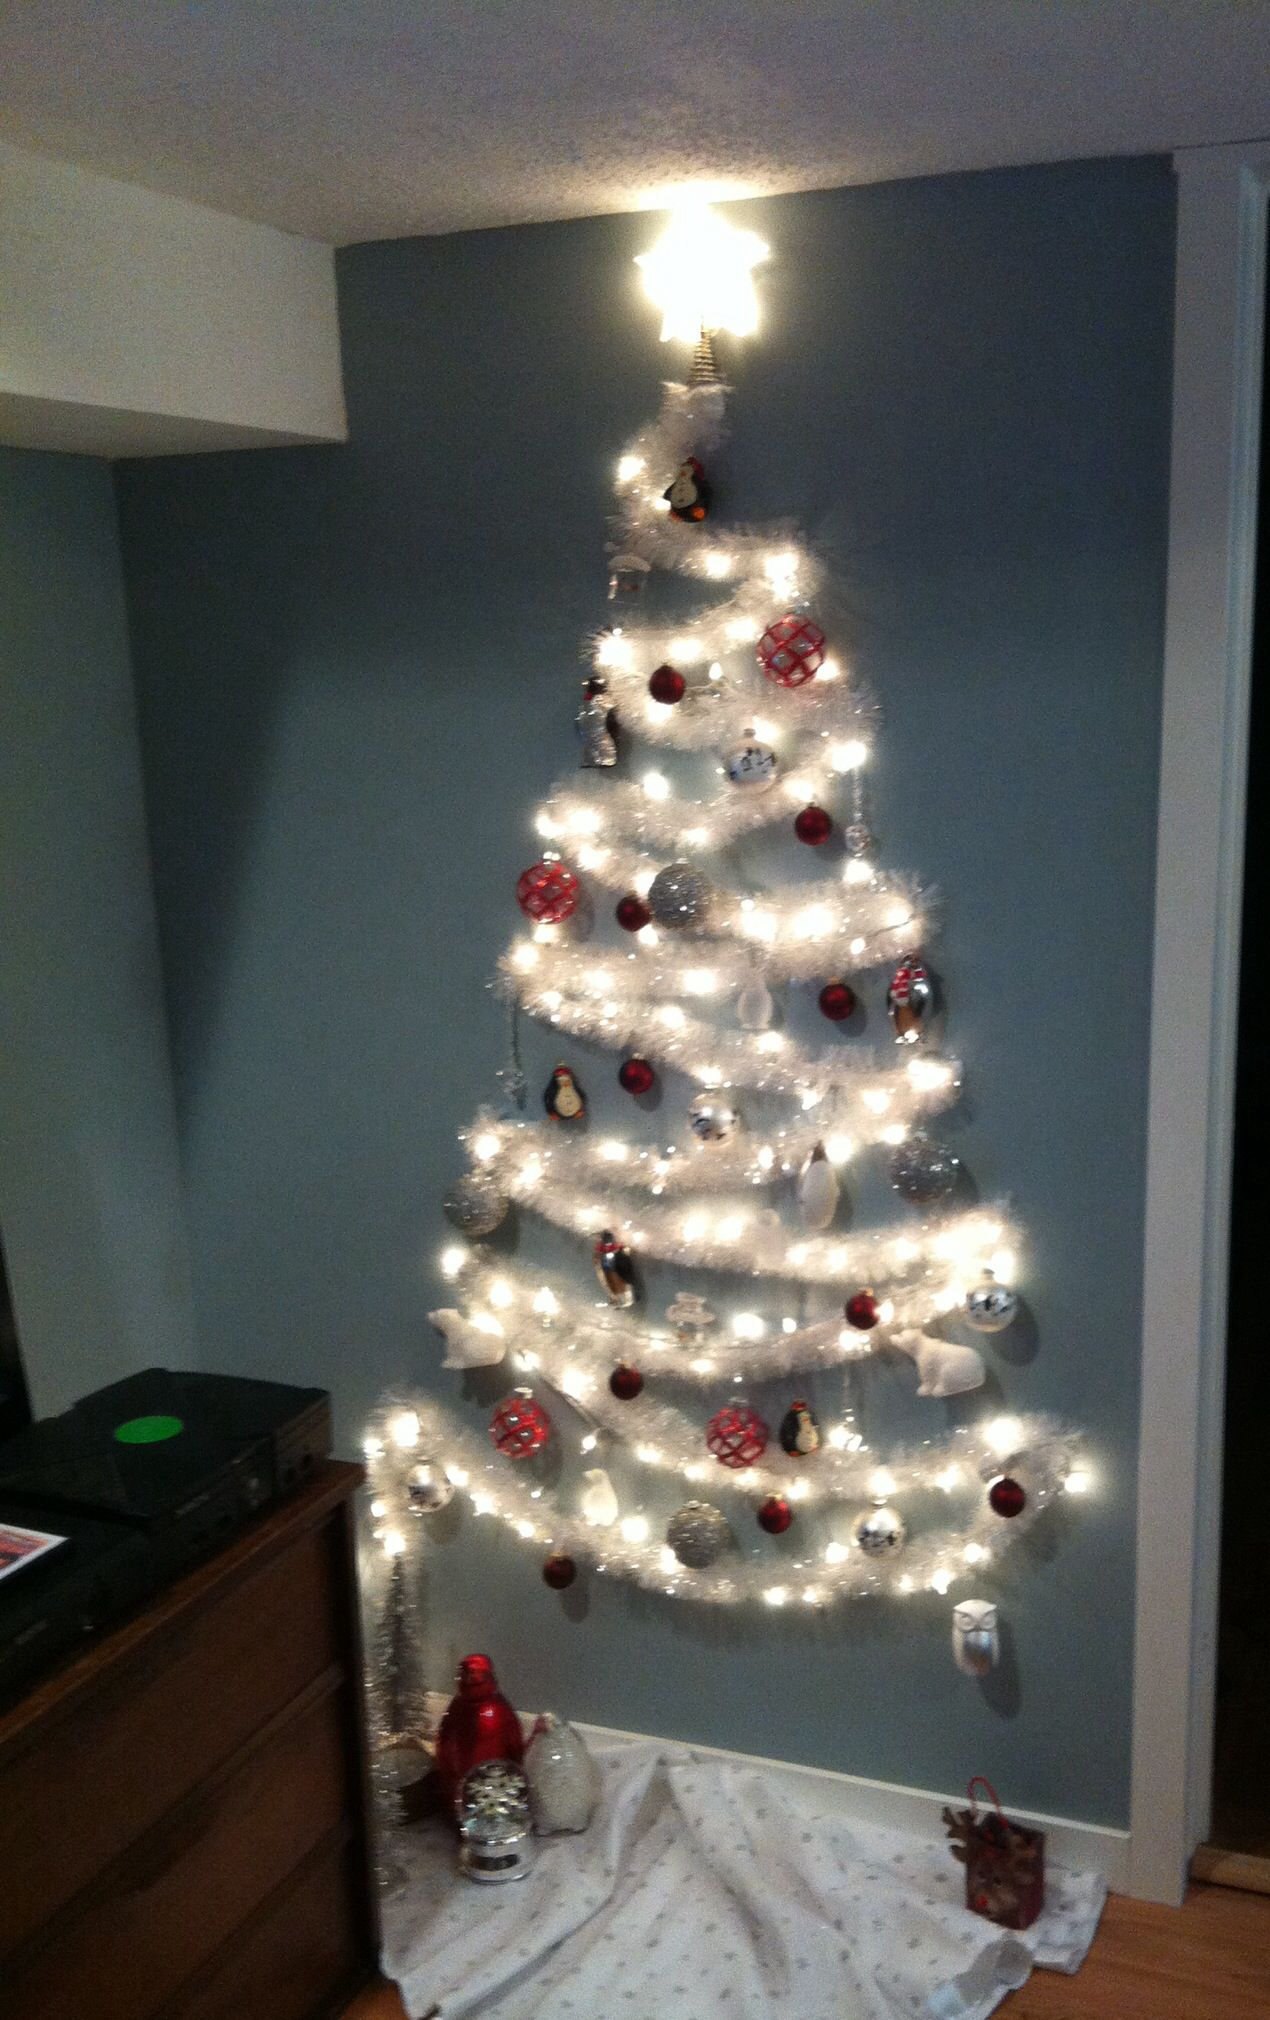 The No Tree Christmas Tree College Pinterest